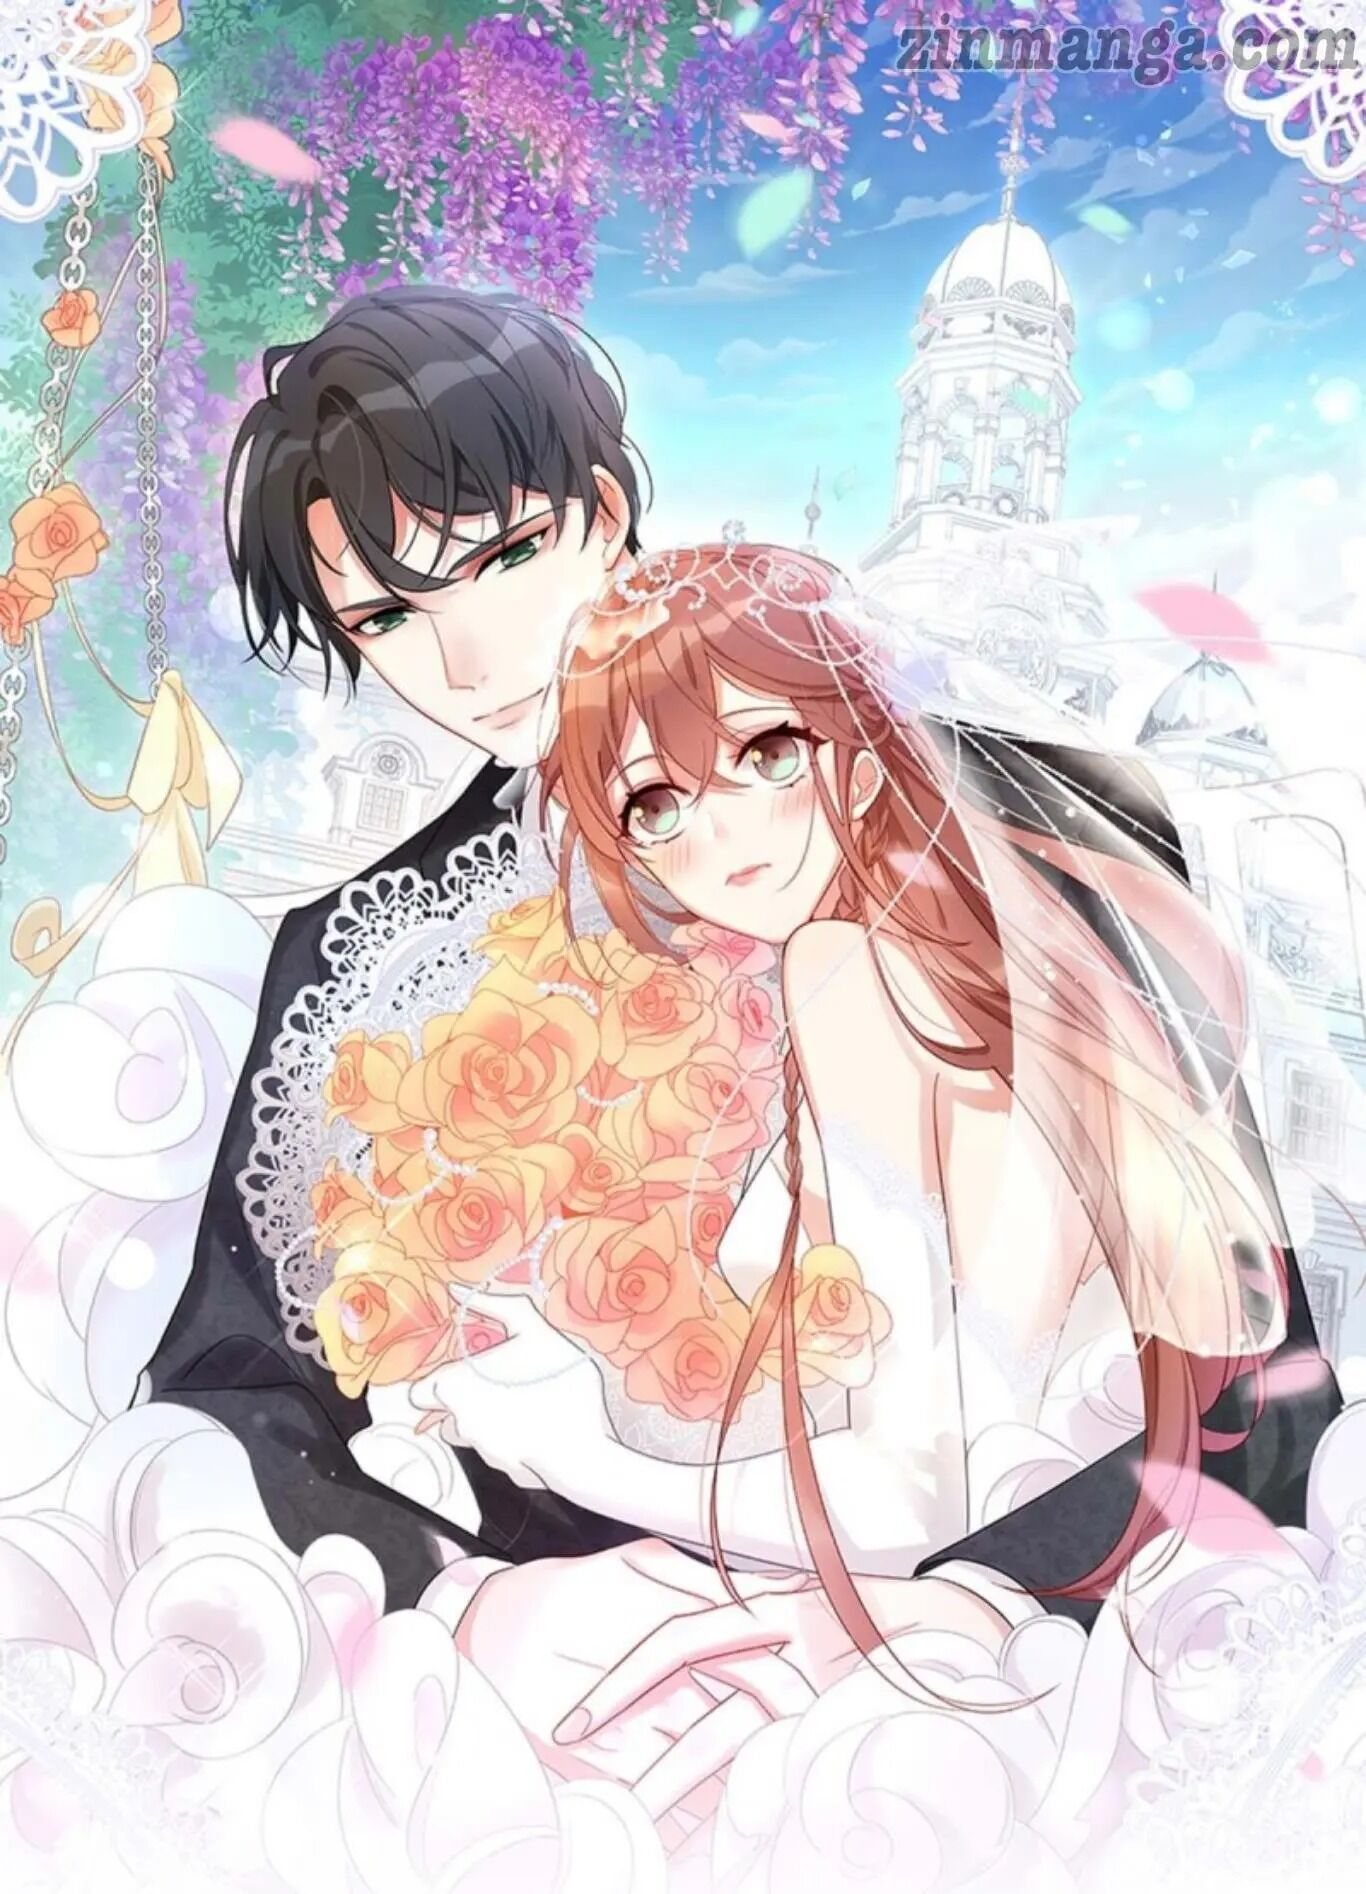 Spoil You - chapter 32 - #1